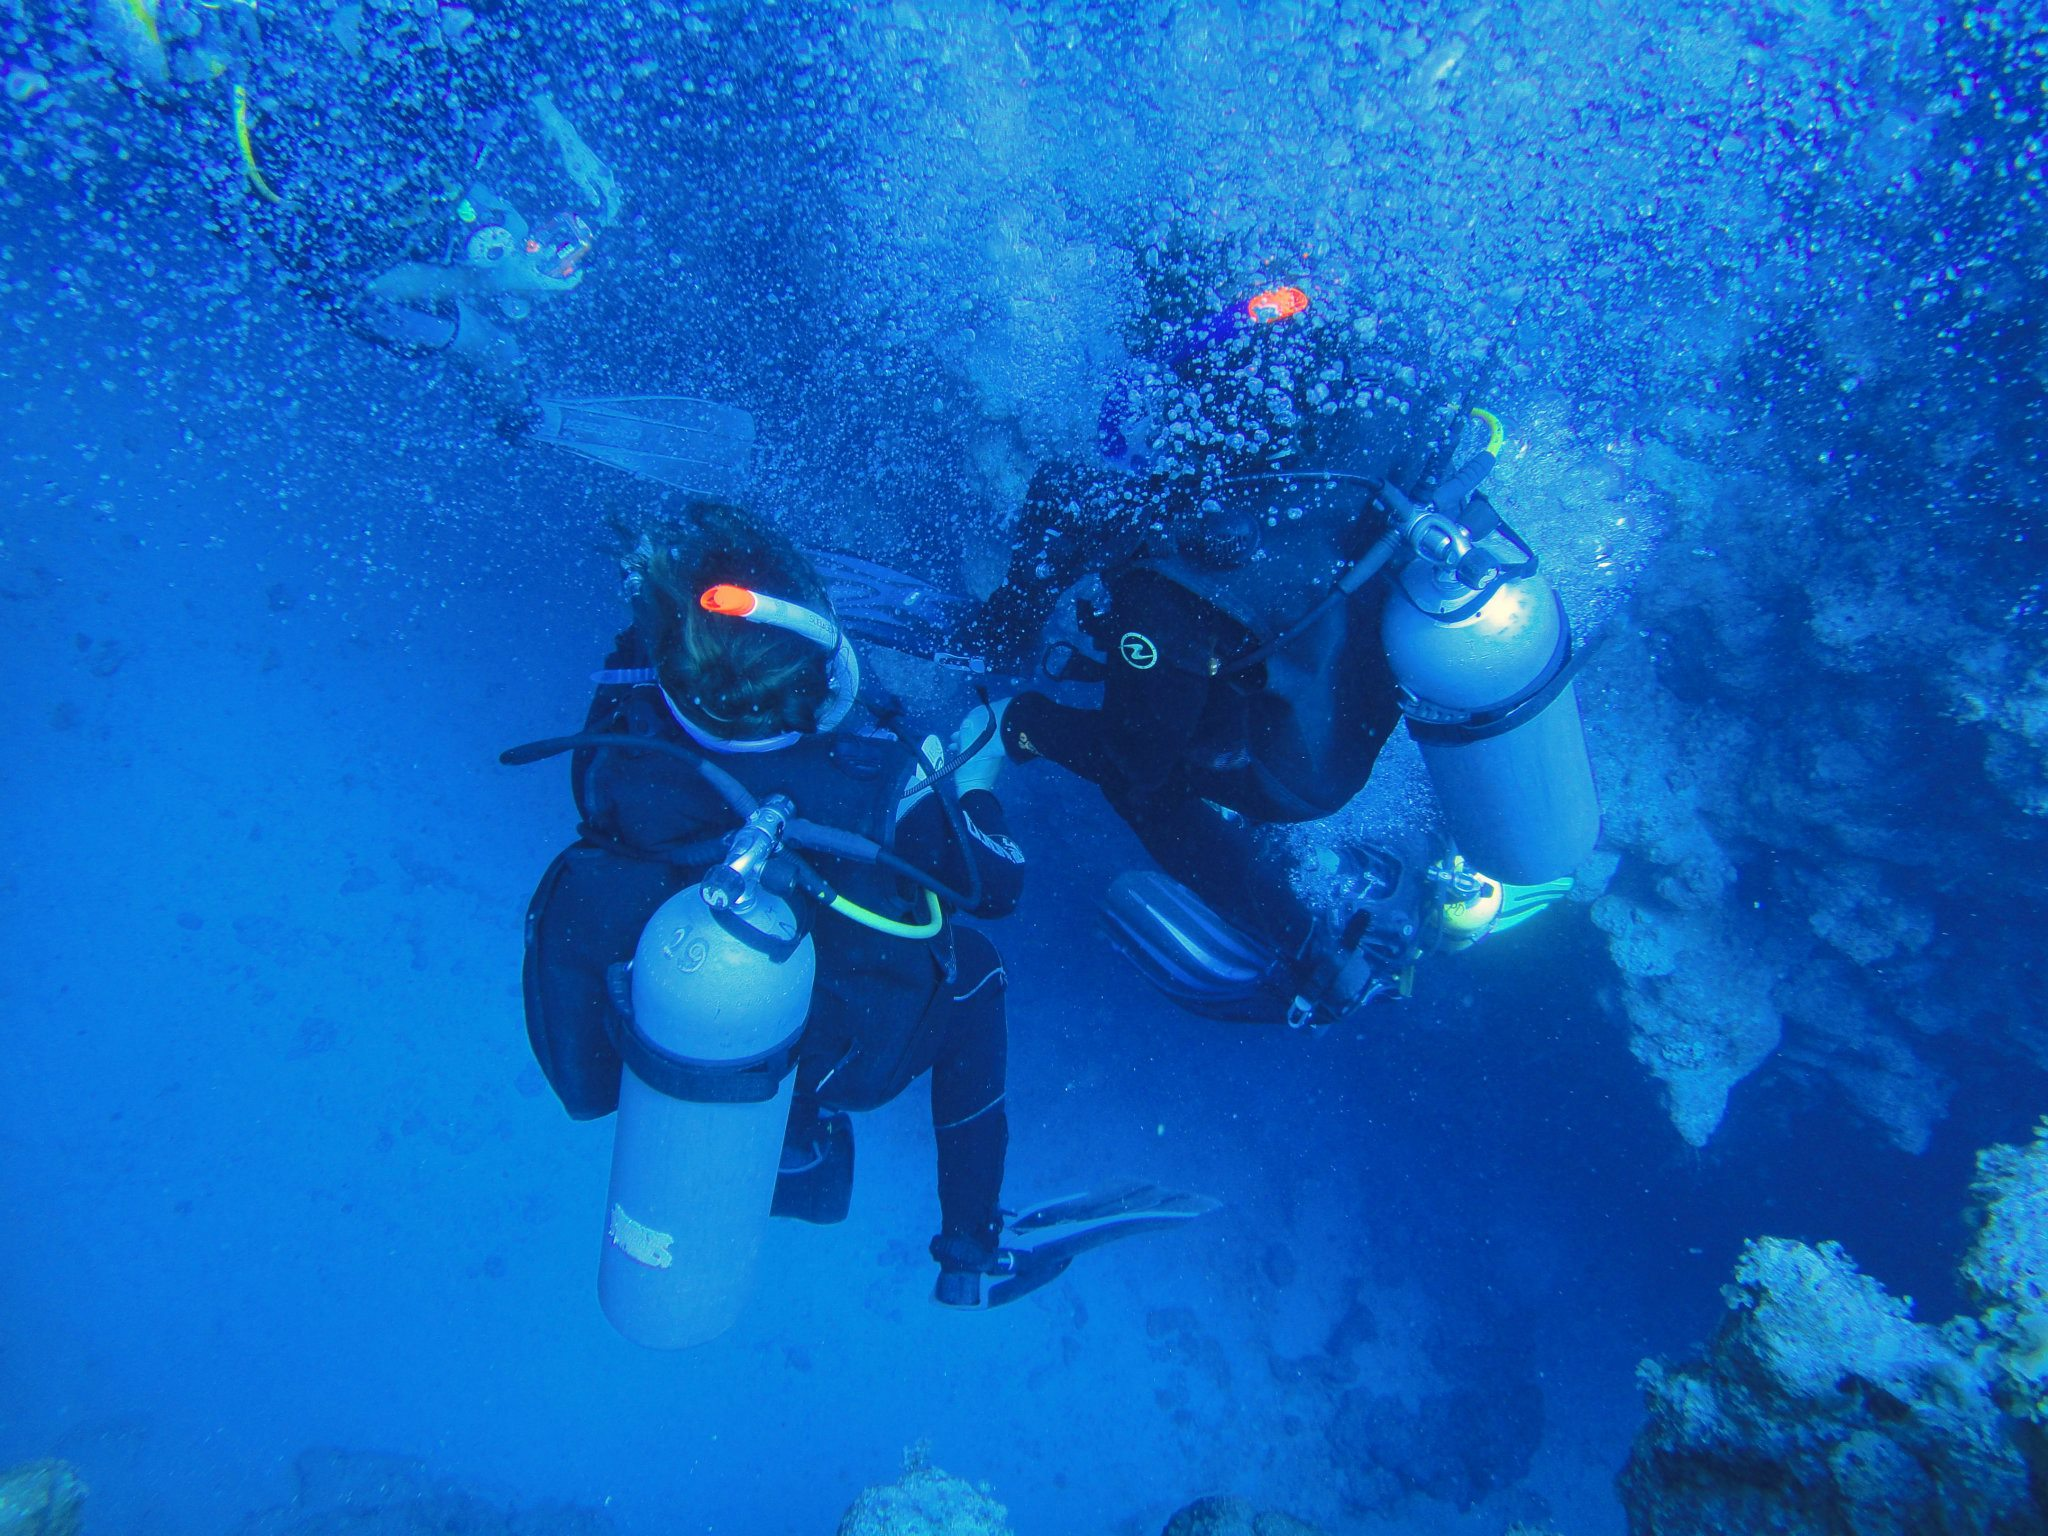 Afzakken in The Canyon in de buurt van de Blue Hole in Dahab